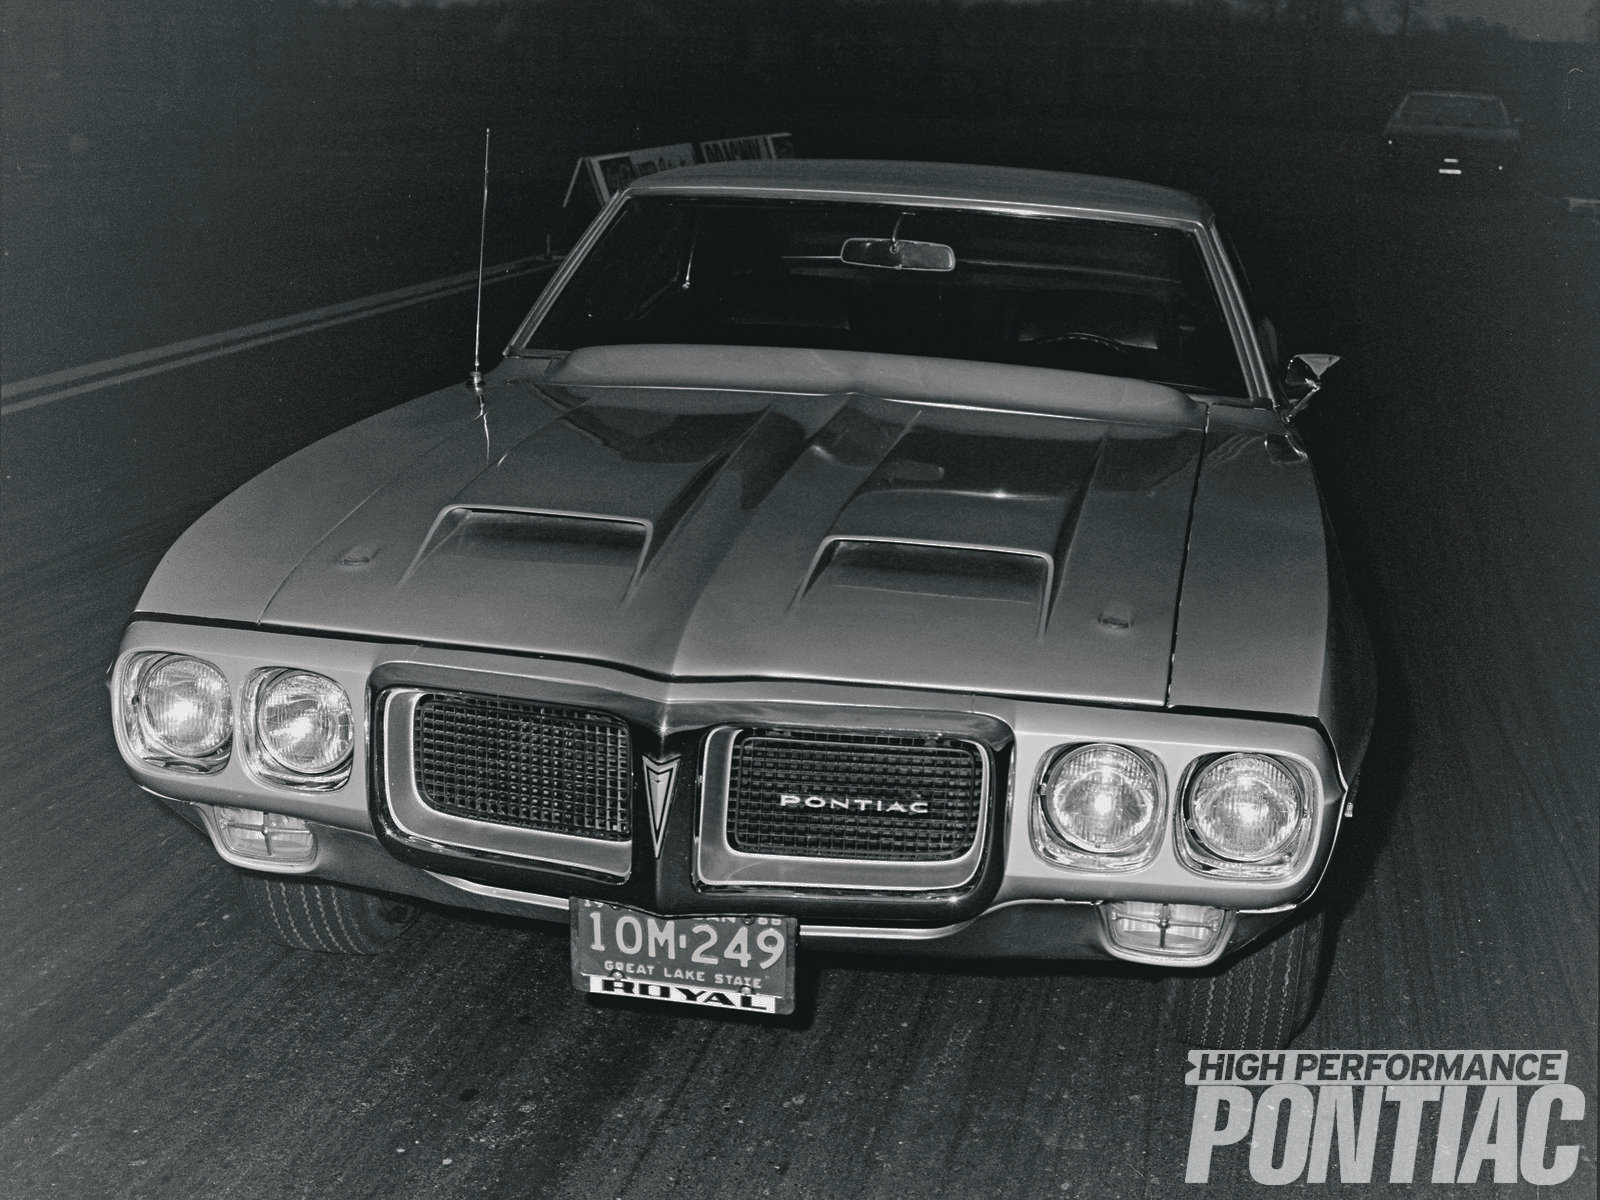 From this perspective, the '69 Trans Am prototype looks identical to a production '69 Firebird 400, except, of course, for the large dual-scooped fiberglass hood and windshield-wiper cover.